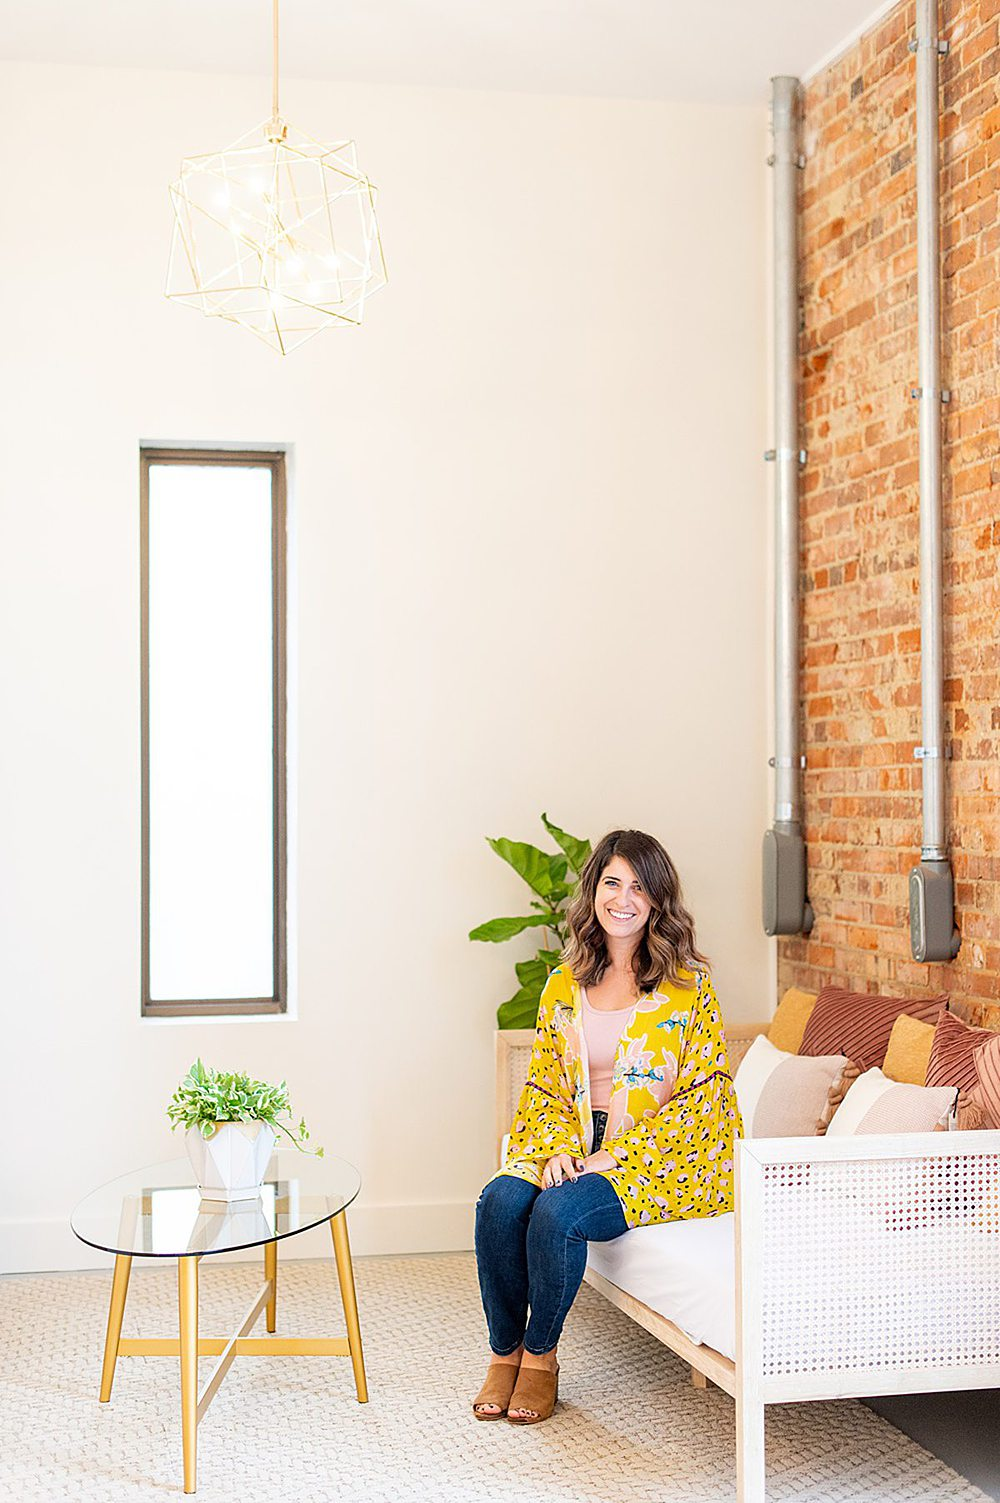 A woman in pink and yellow on a couch with a brick wall behind her and glass coffee table in front of her at The Graham Mill.